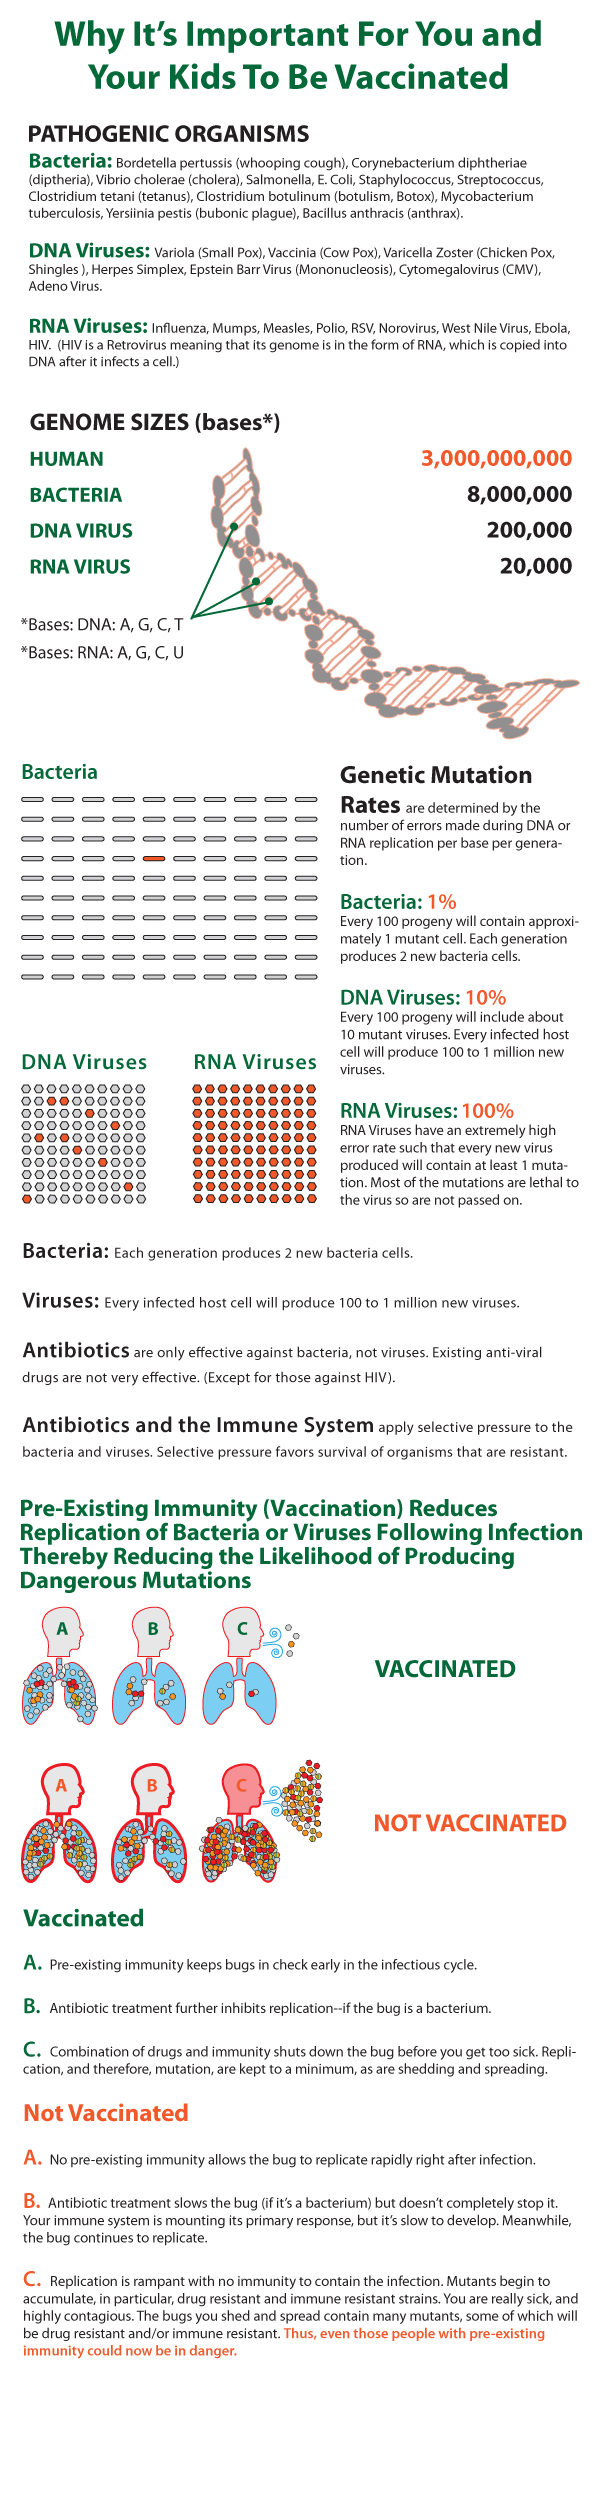 Vaccine-Effect-Infographic-Final